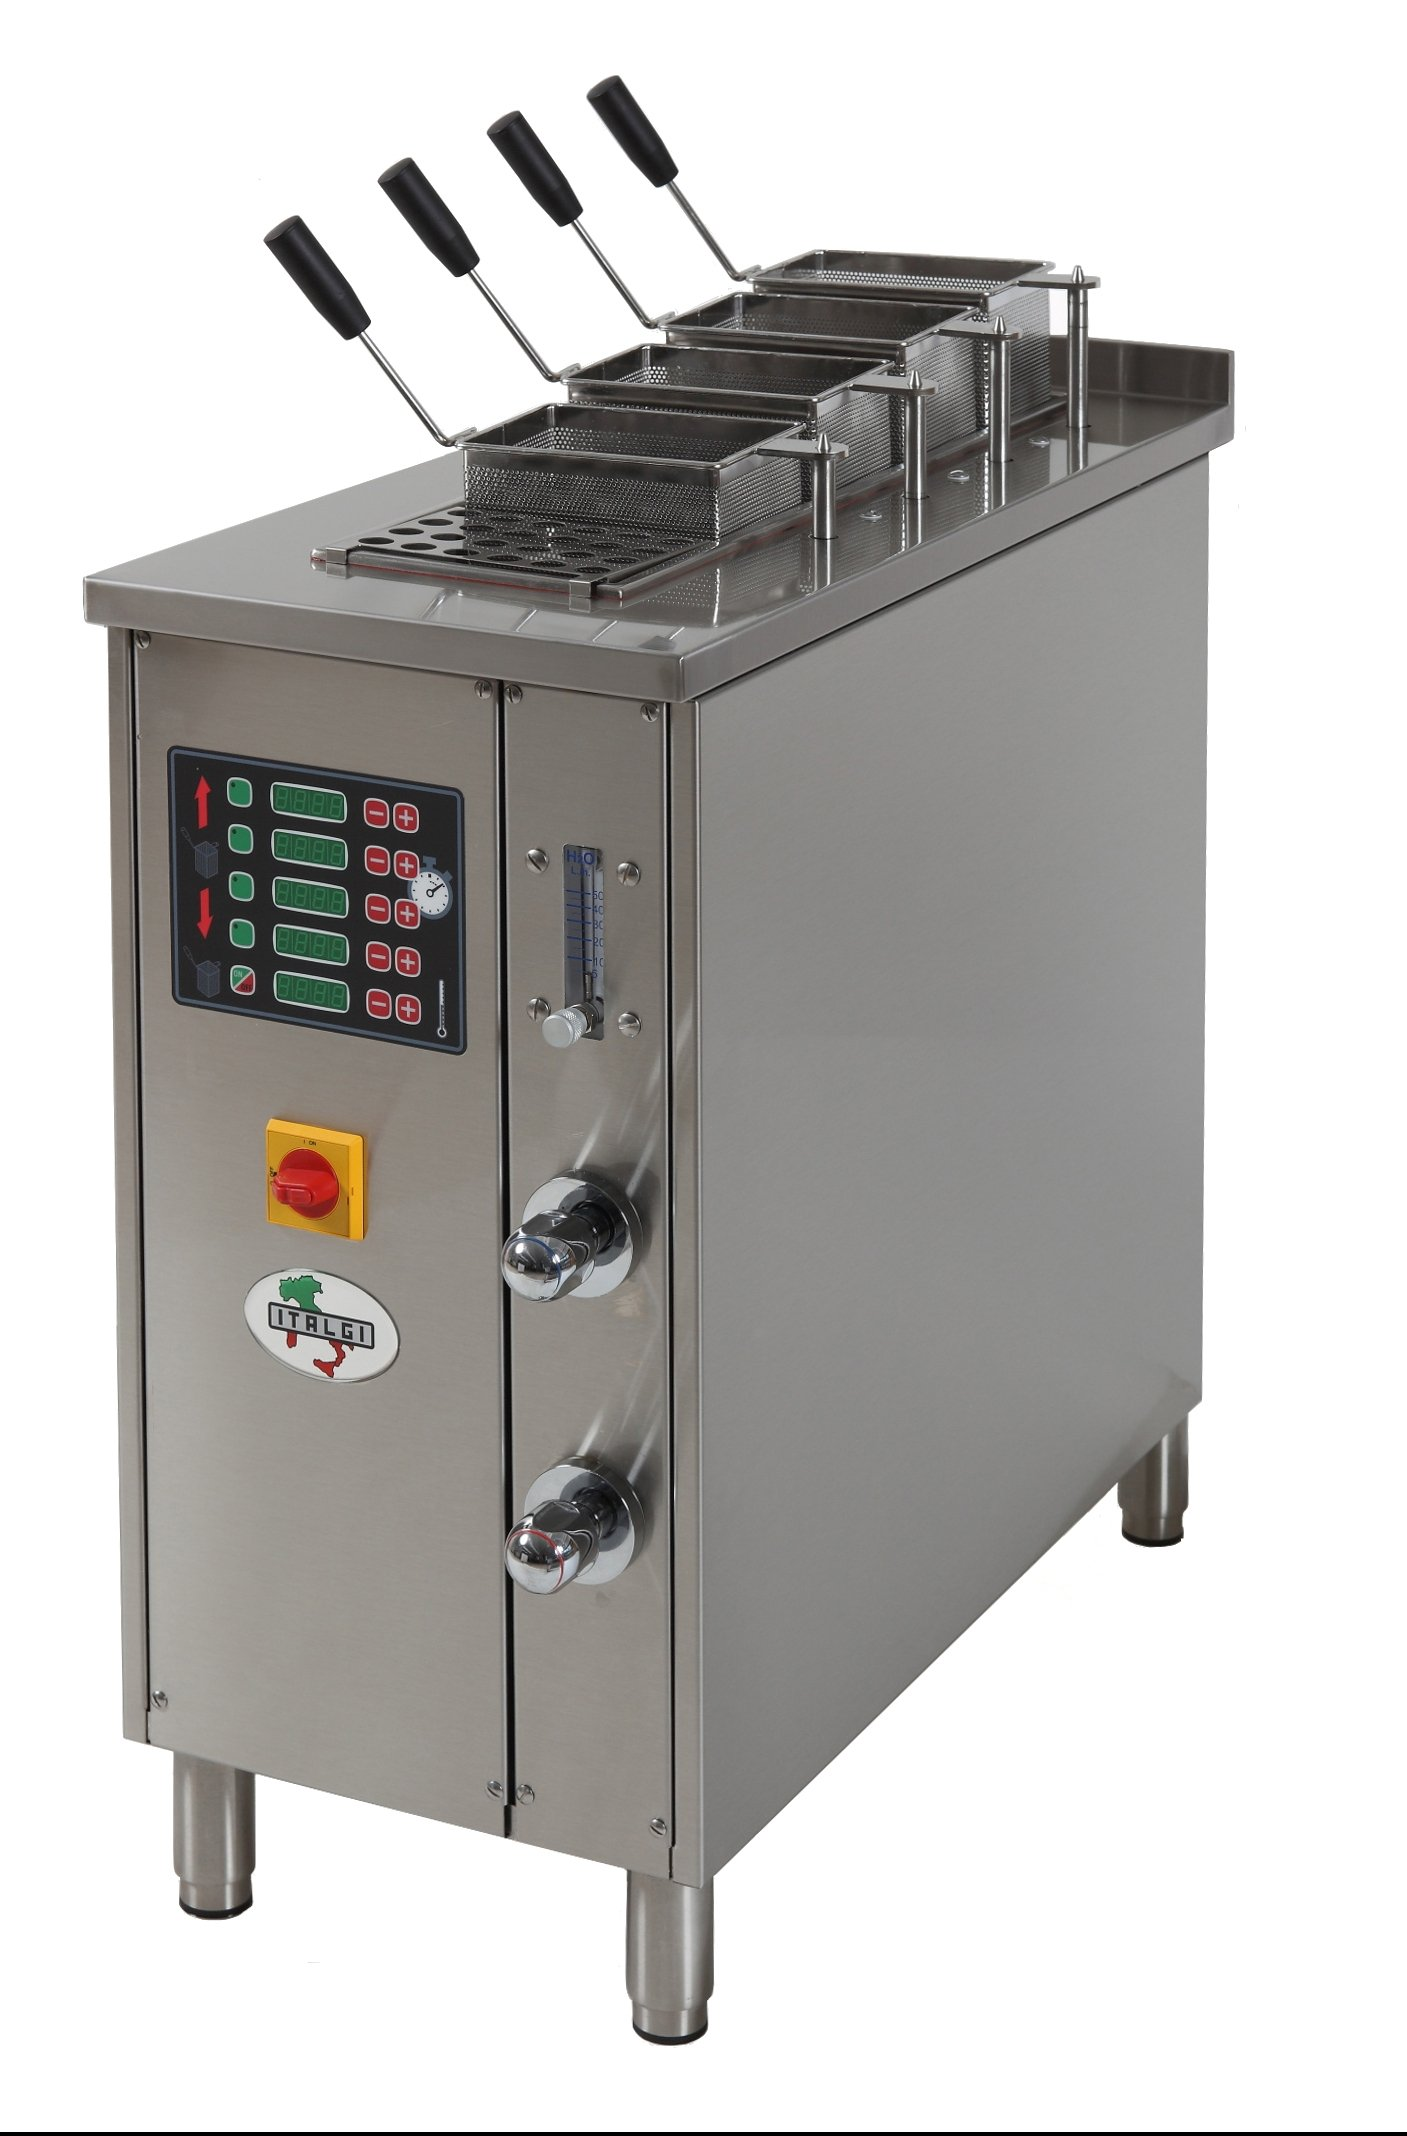 Commercial Pasta Cooker - Innovative Food Equipment Australia